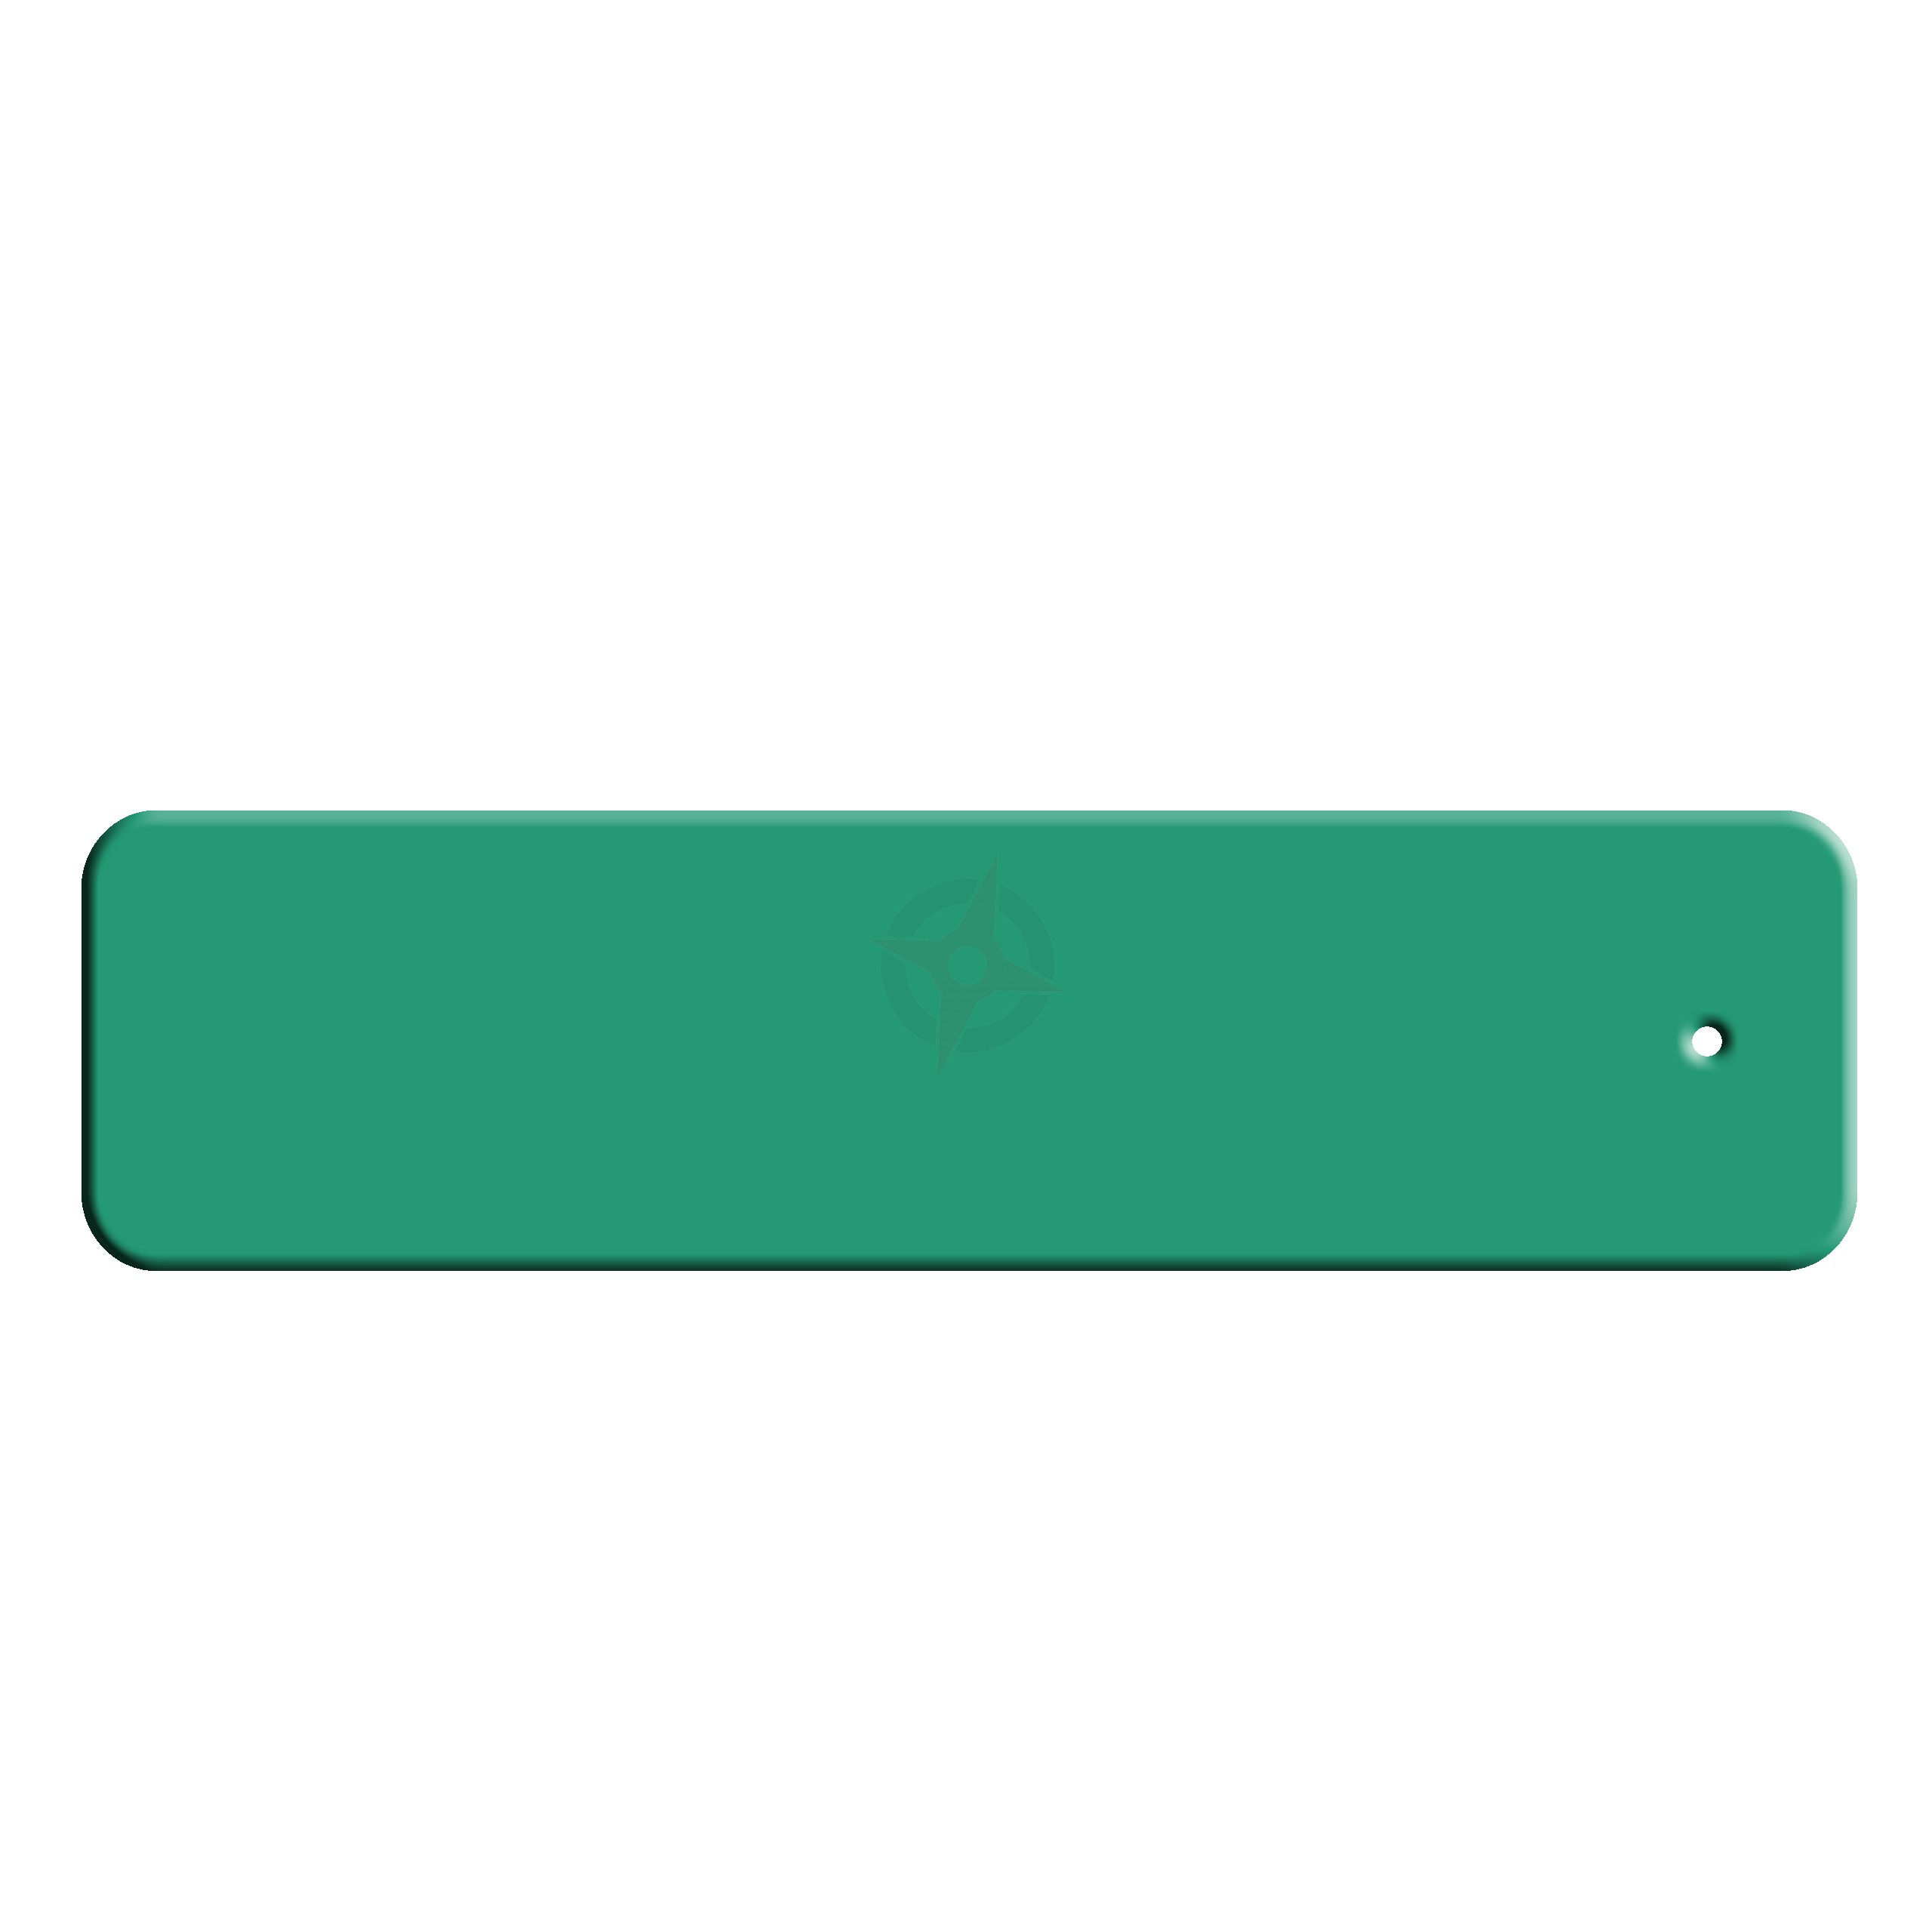 Revive Turquoise Green (RAL6016) Colour Sample